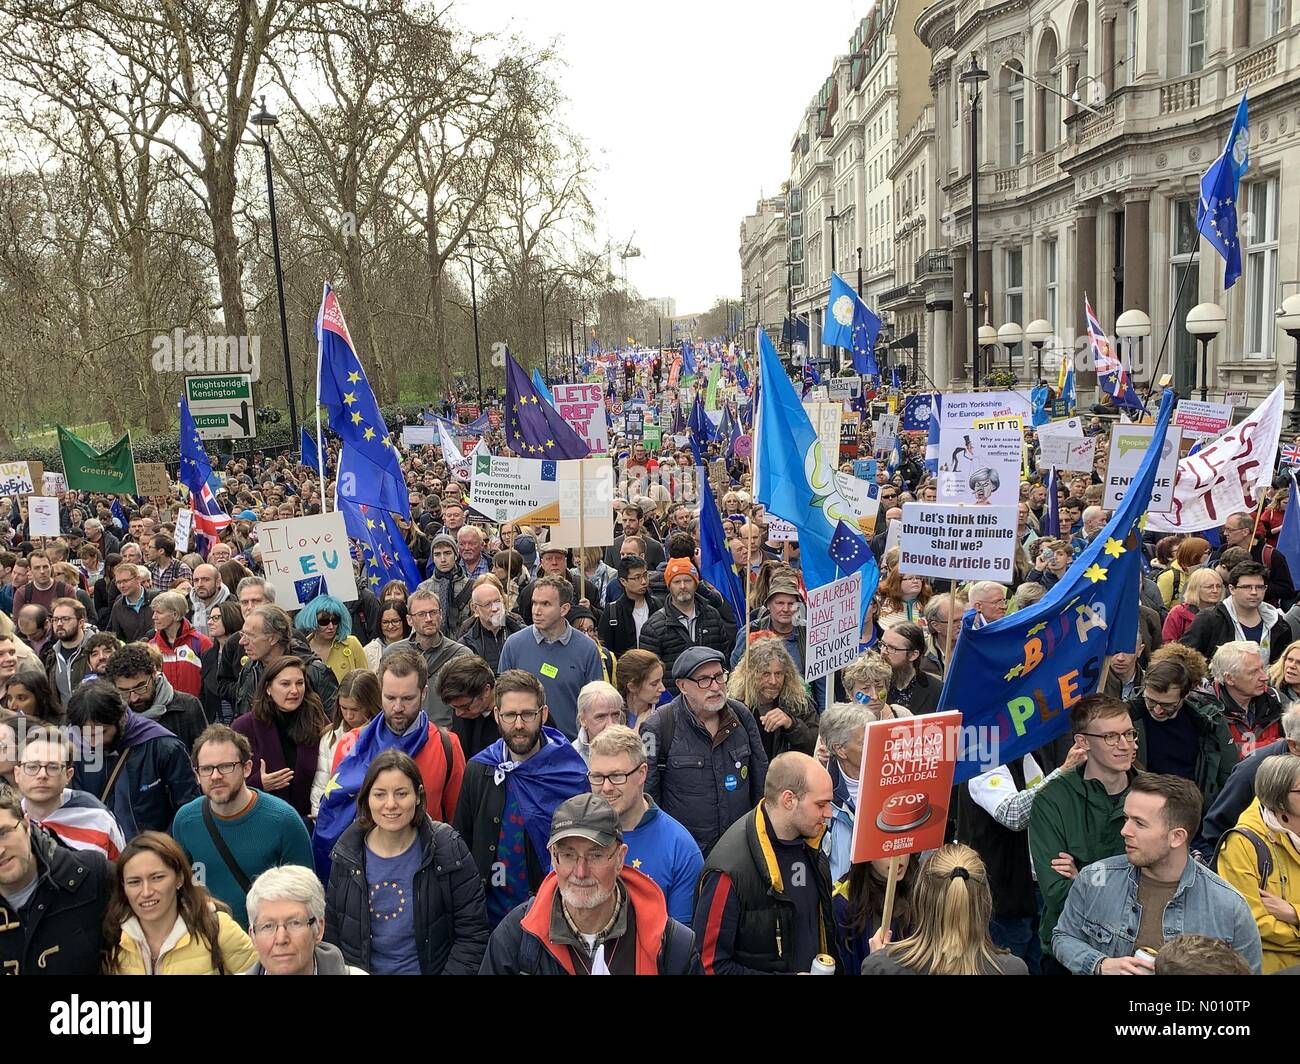 People's Vote March, London, UK, 23 March 2019 Stock Photo